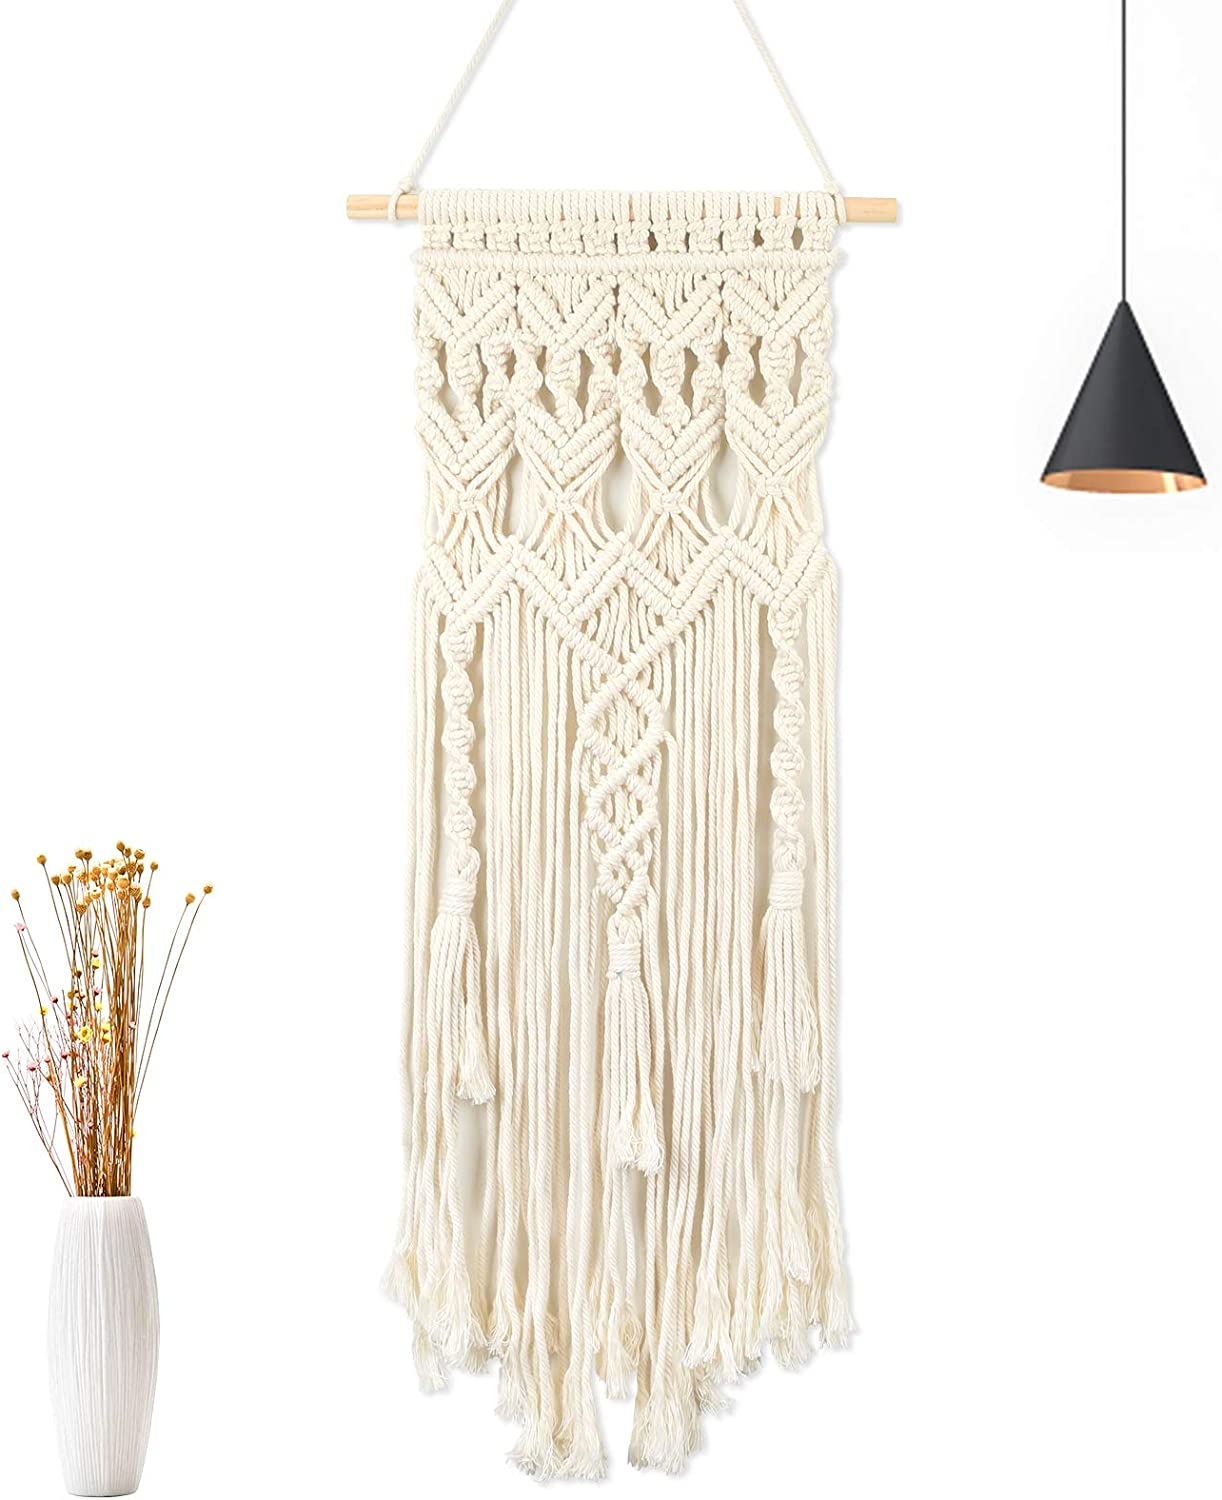 "Macrame Wall Hanging Woven, Purnap Boho Chic Bohemian Home Decoration Handmade, Art Wall Decor Tassel Geometric Pattern with Stick for Home, Living Room, Apartment Room, 13"" x 29.5"""